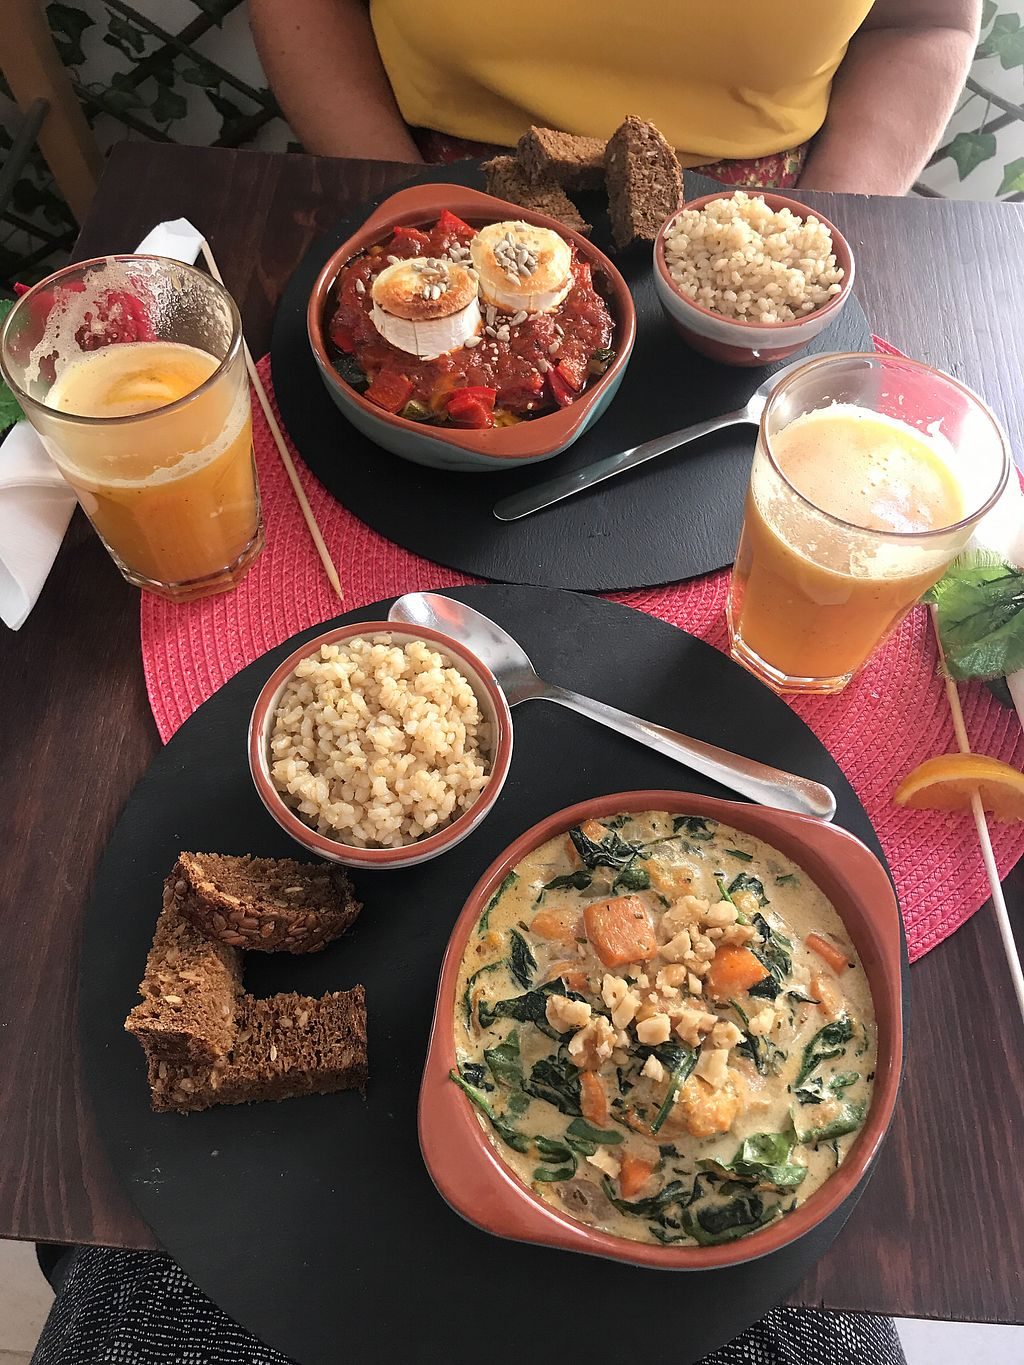 """Photo of Dona Flor Cafe  by <a href=""""/members/profile/ERodTM"""">ERodTM</a> <br/>Spanish Pisto up top (vegetarian) and a Squash & Spinach soup (vegan) in front of me. Both delicious <br/> September 8, 2017  - <a href='/contact/abuse/image/65709/302163'>Report</a>"""